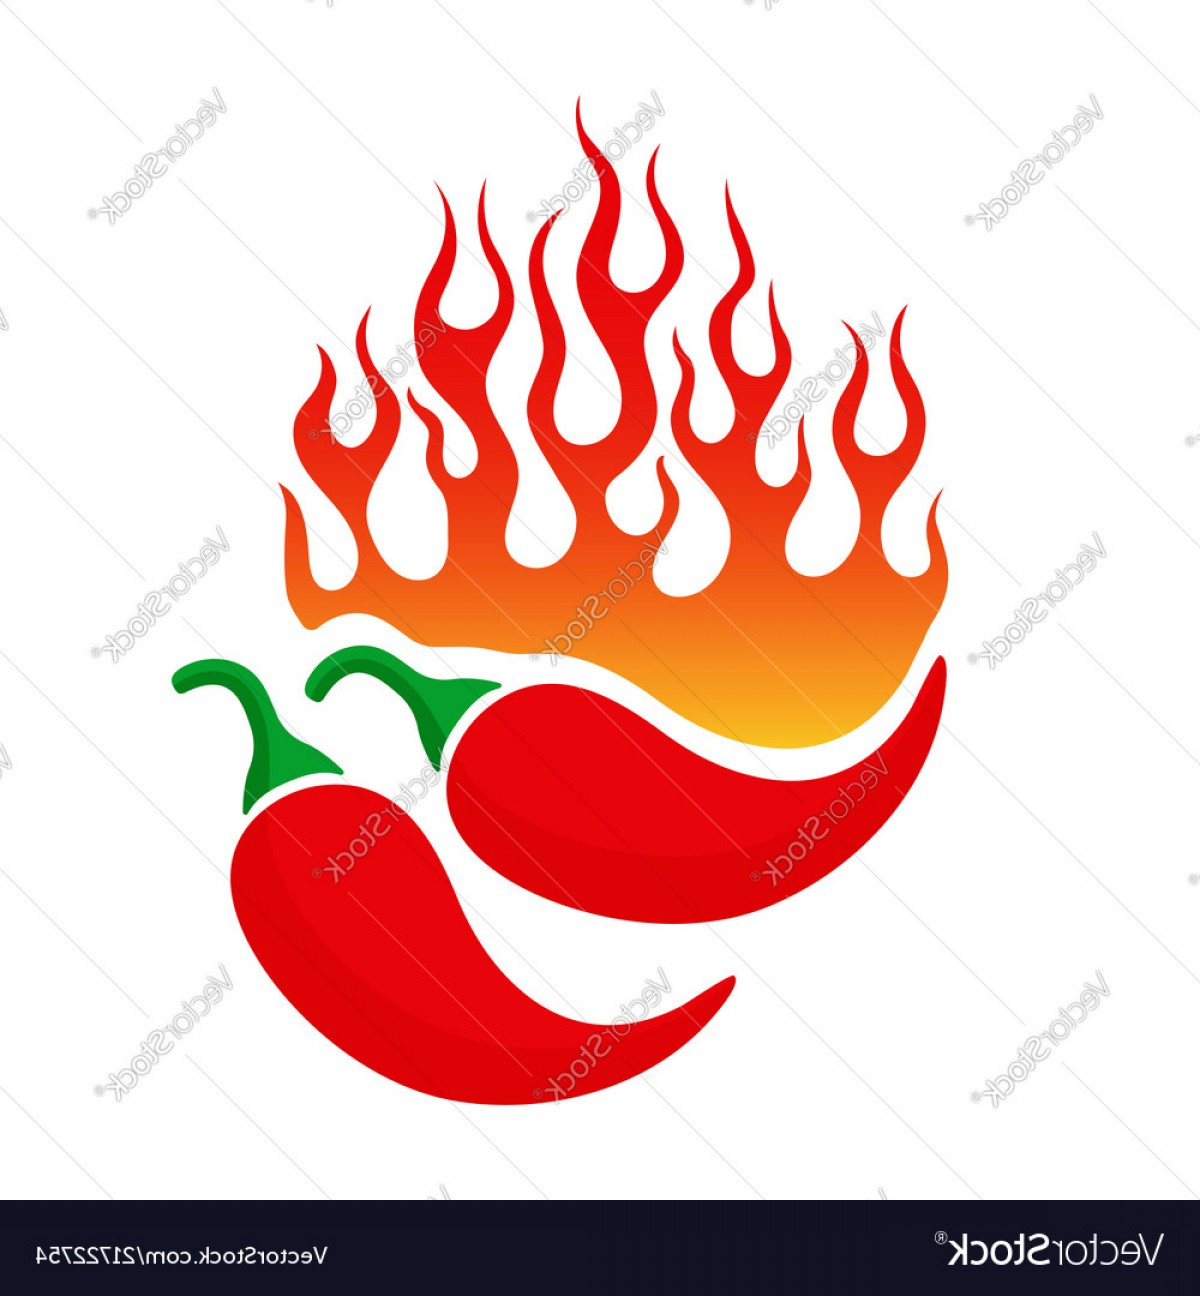 Cartoon Fire Flames Vector: Cartoon Emblem With Chili Pepper And Fire Flame Vector